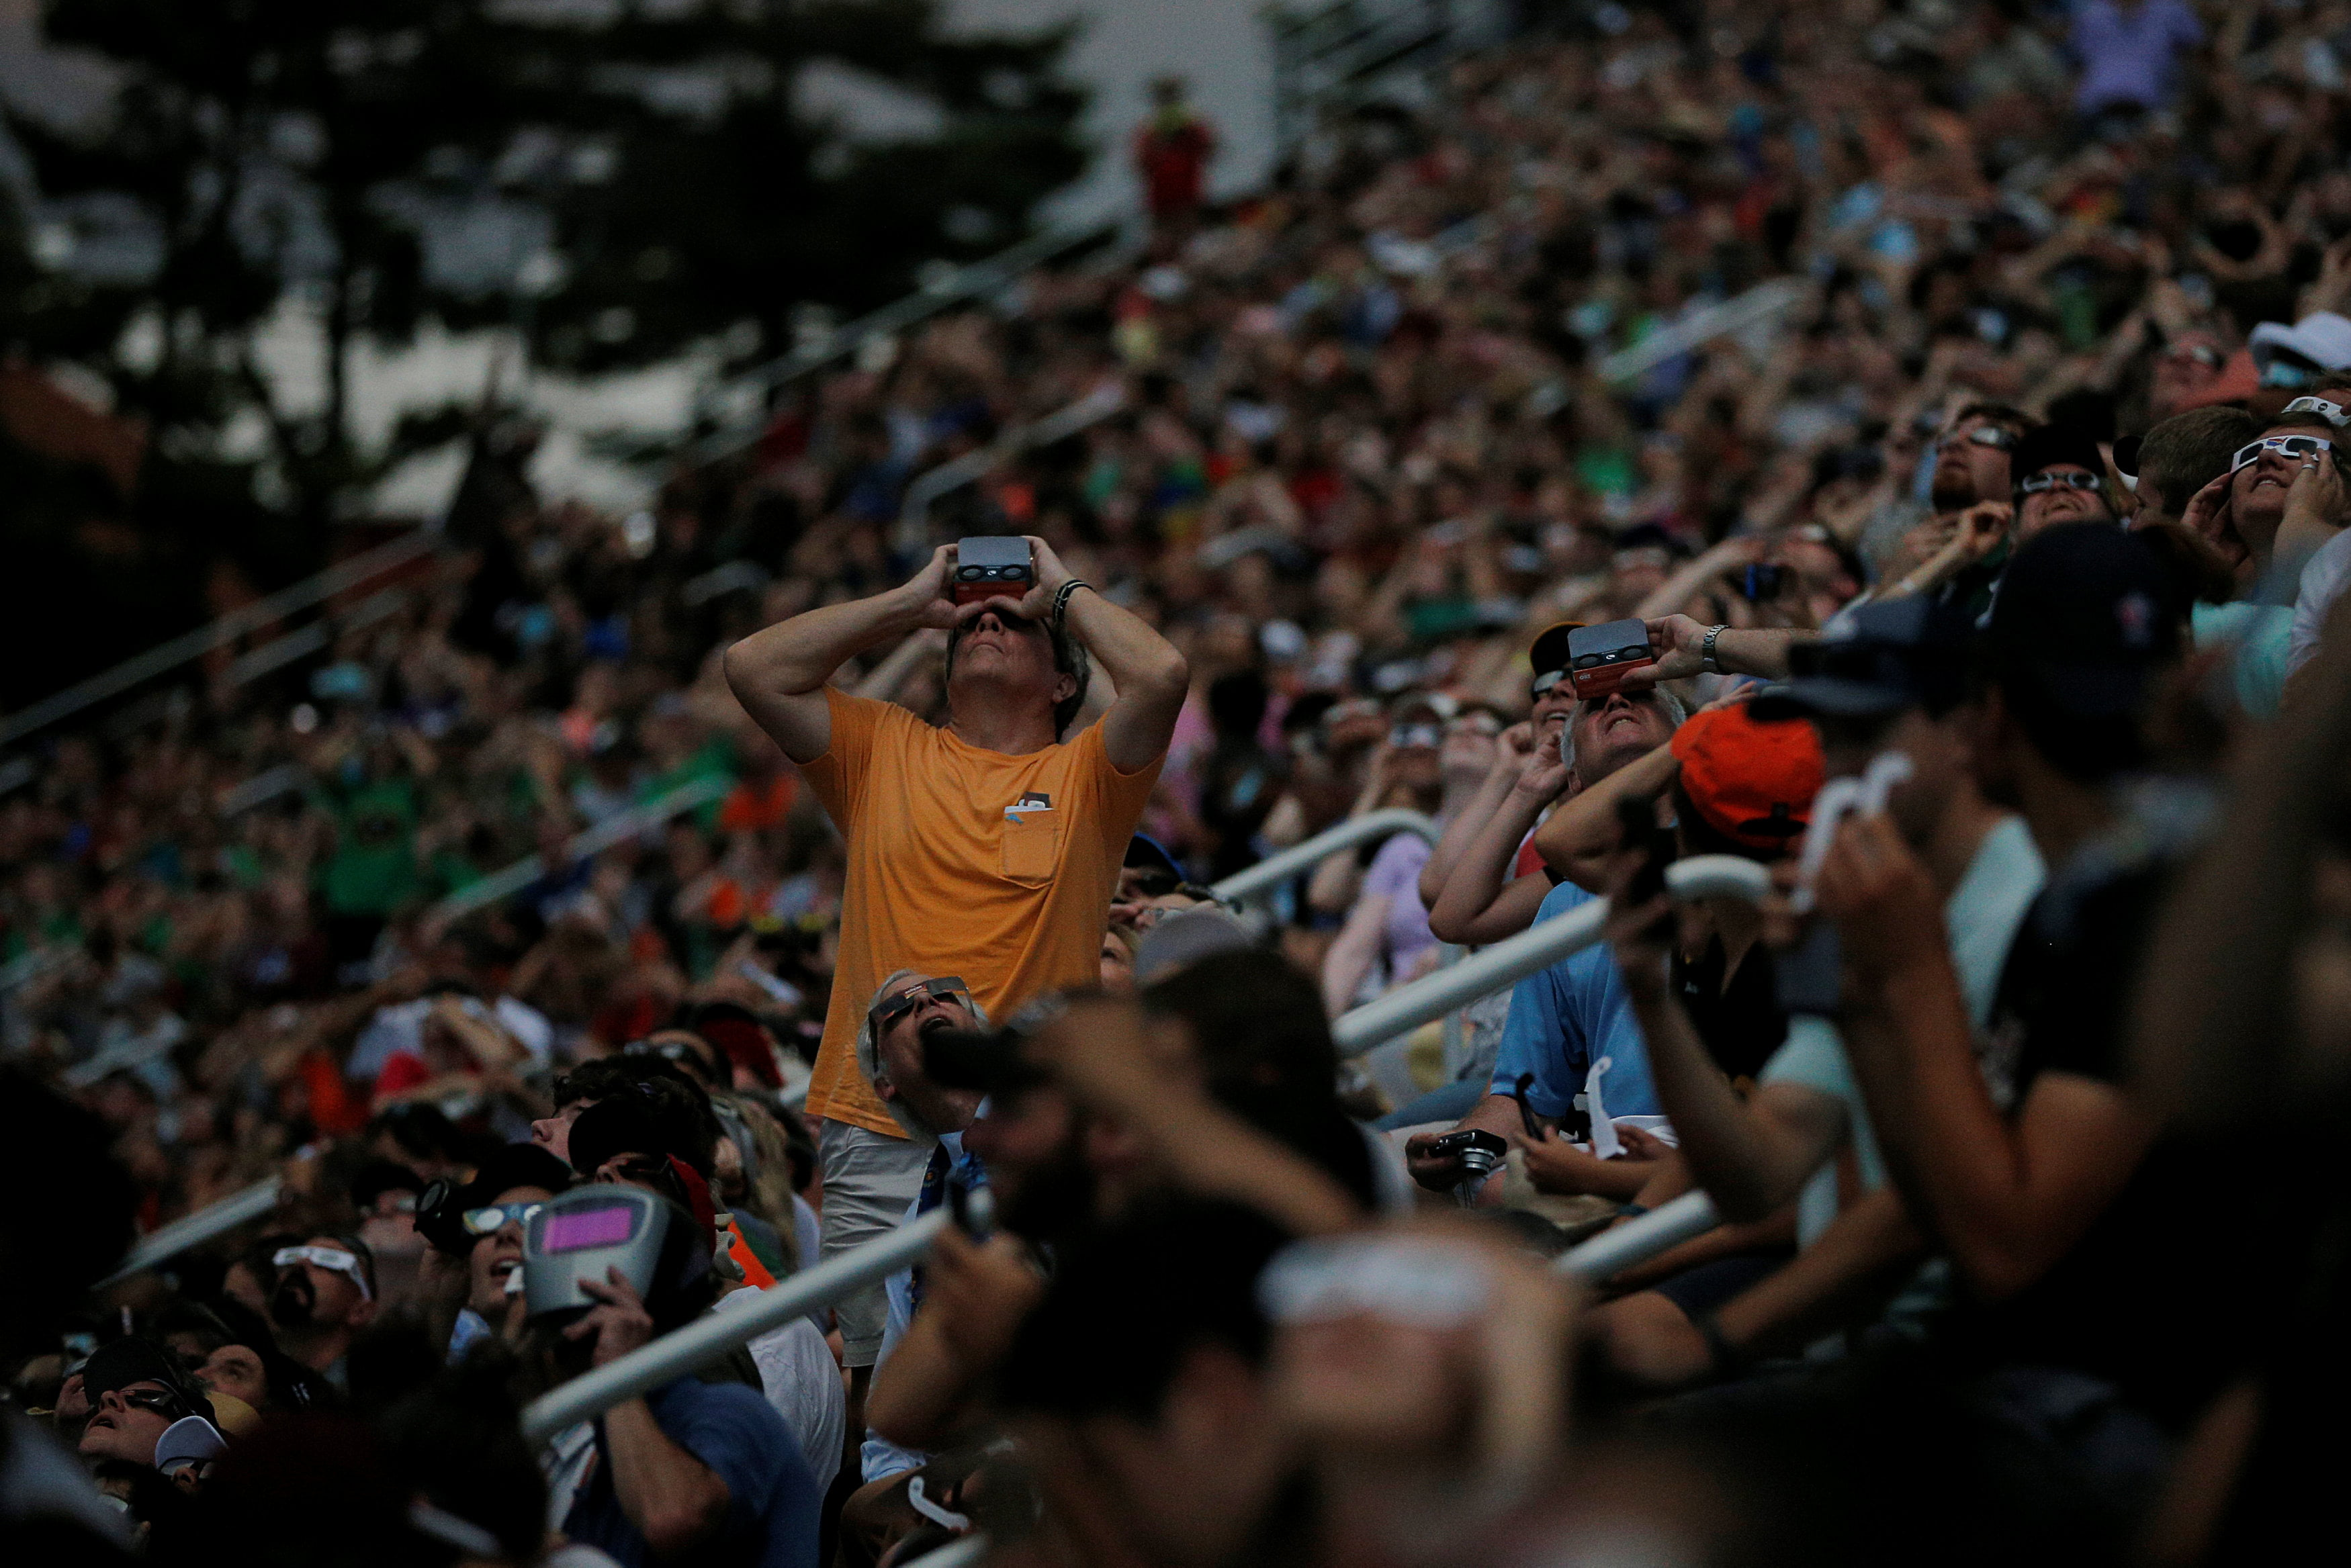 Spectators watch the final moments before the total eclipse at the football stadium at Southern Illinois University in Carbondale